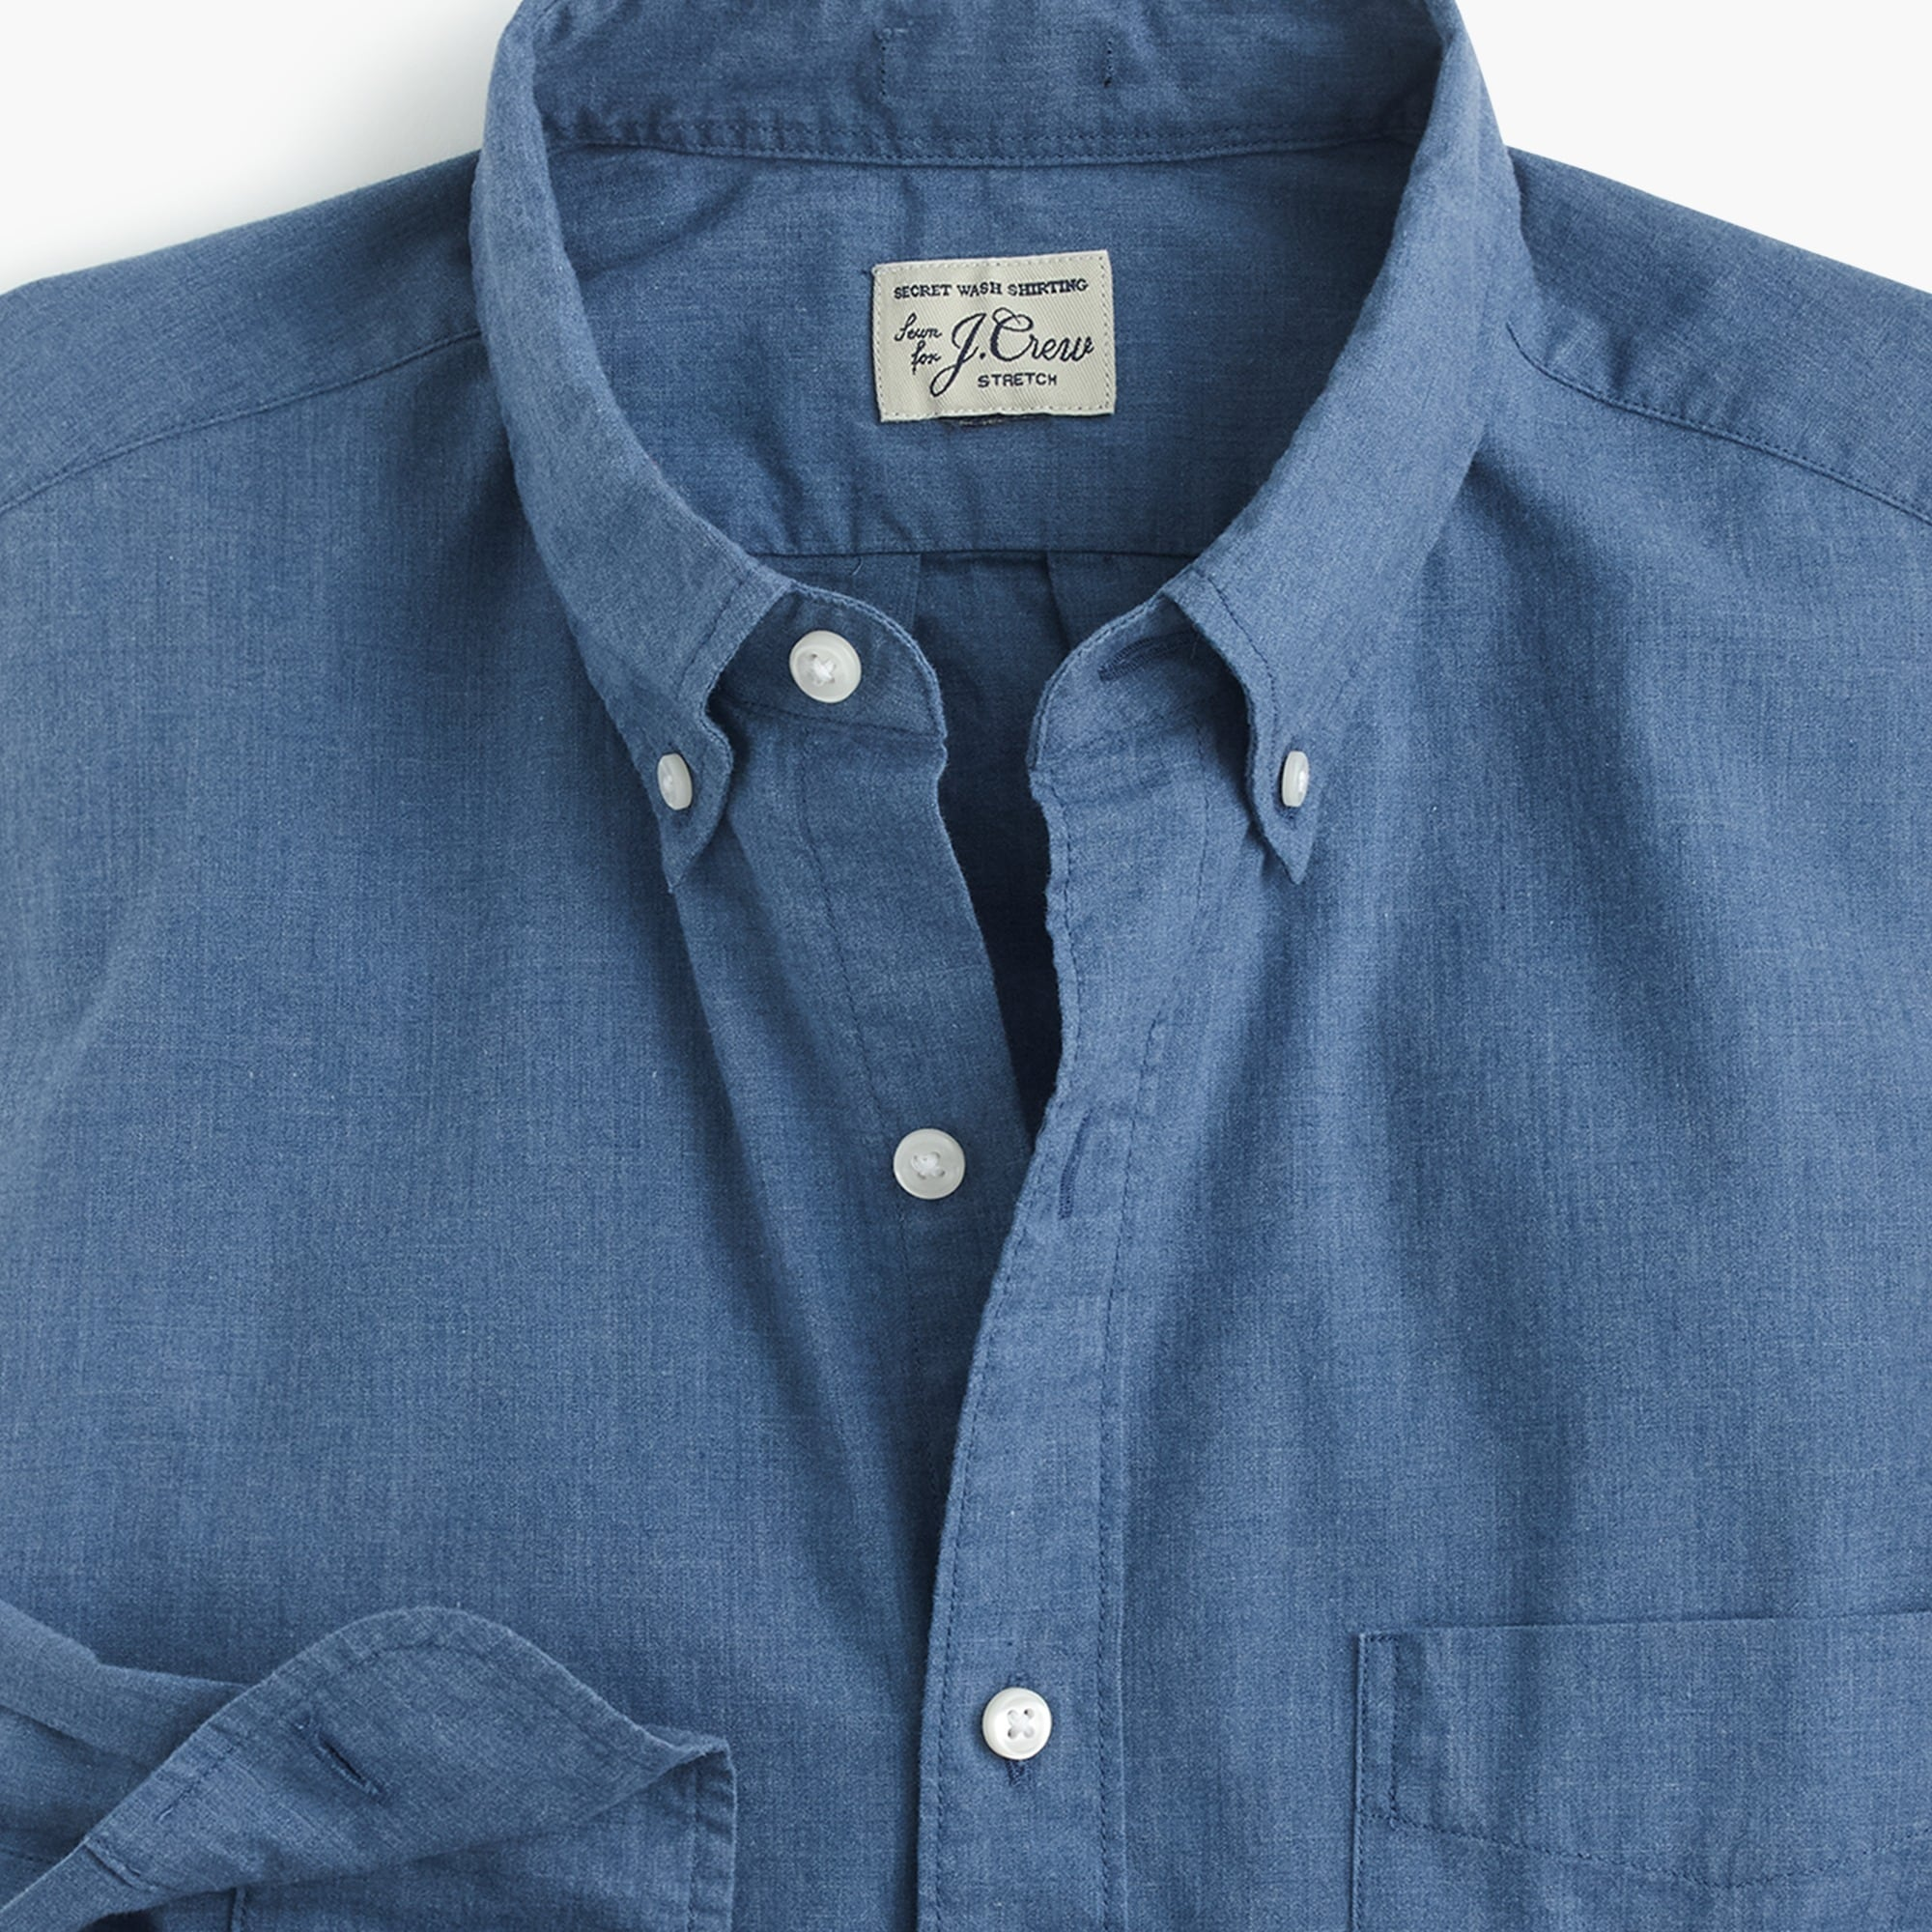 Slim stretch Secret Wash shirt in blue heather poplin